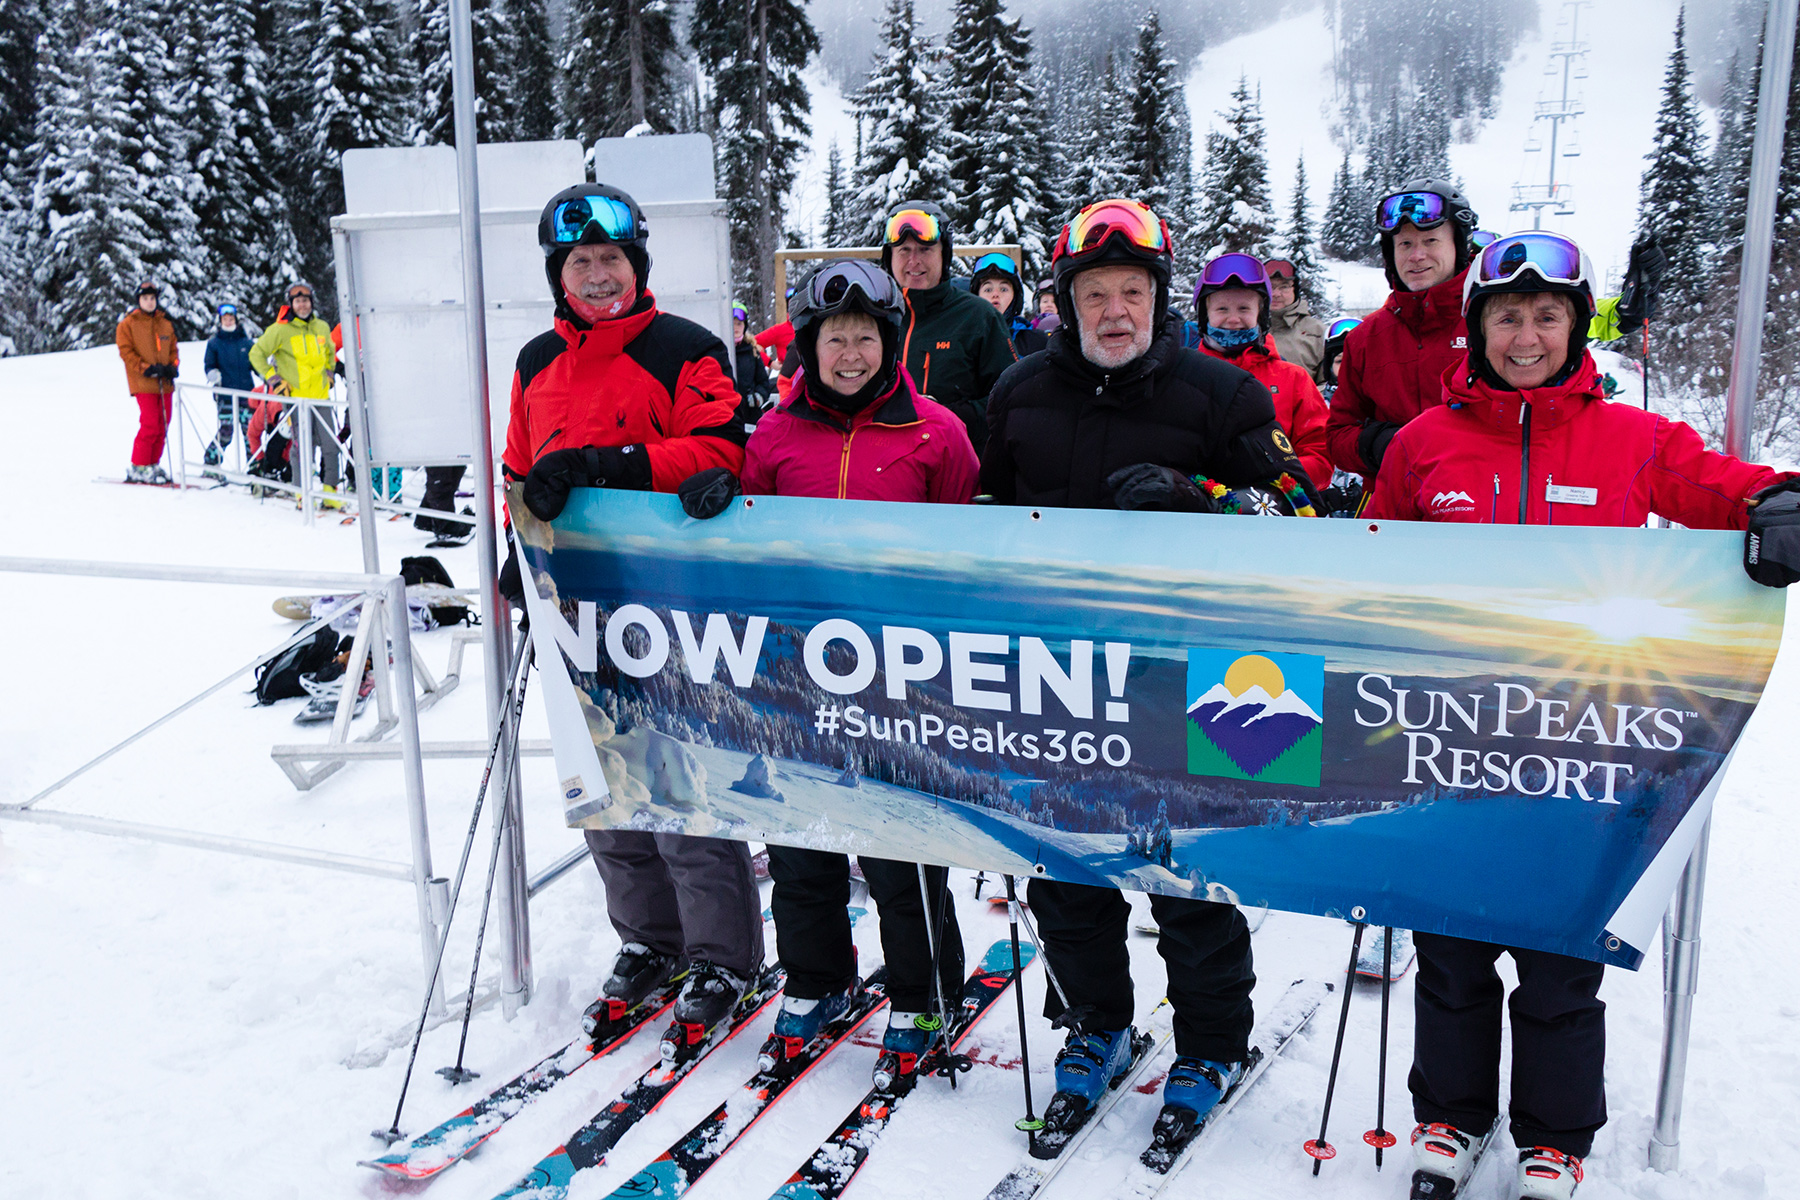 Now Open Banner at the Orient Chairlift